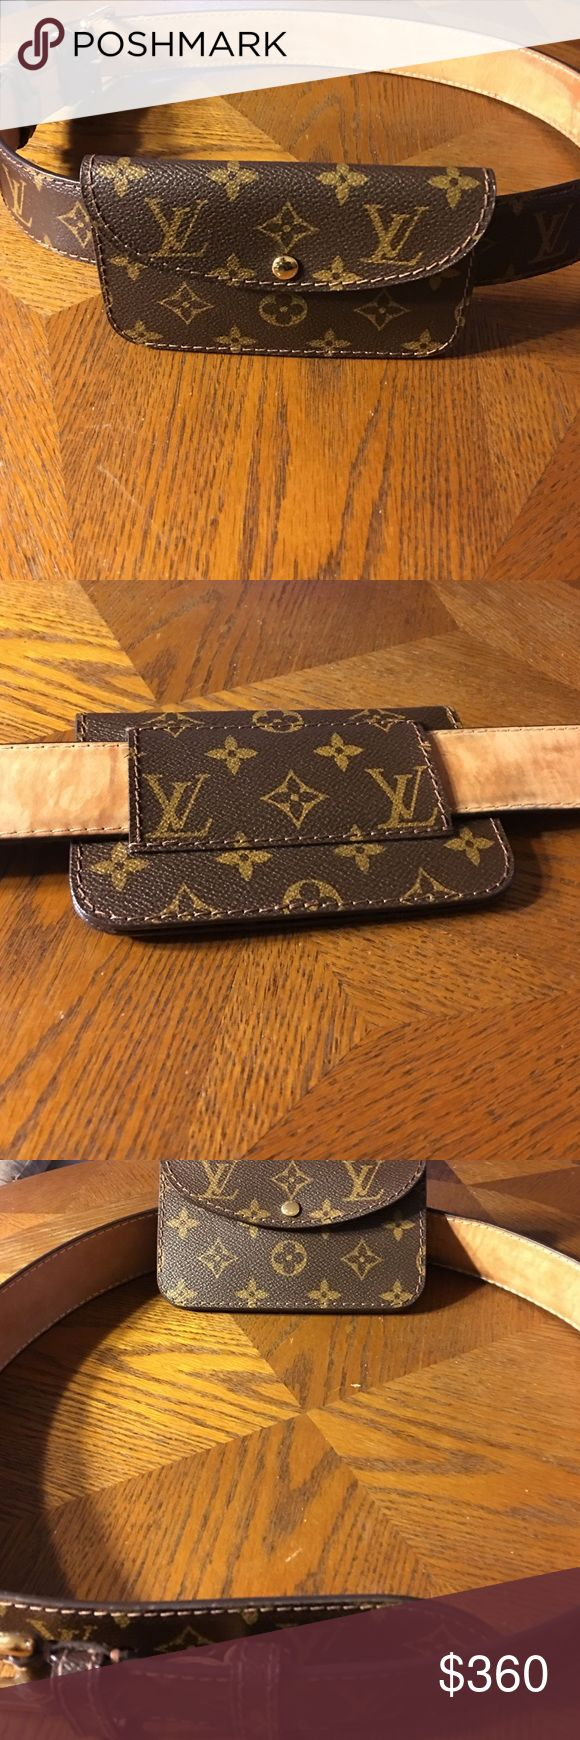 Louis Vuitton belt with pouch Louis Vuitton belt with pouch super cute and girly. 💯 percent real size 40. Used but it's in great condition. 🚫🚫Please No low ball offers and no trades 🚫🚫 Louis Vuitton Accessories Belts